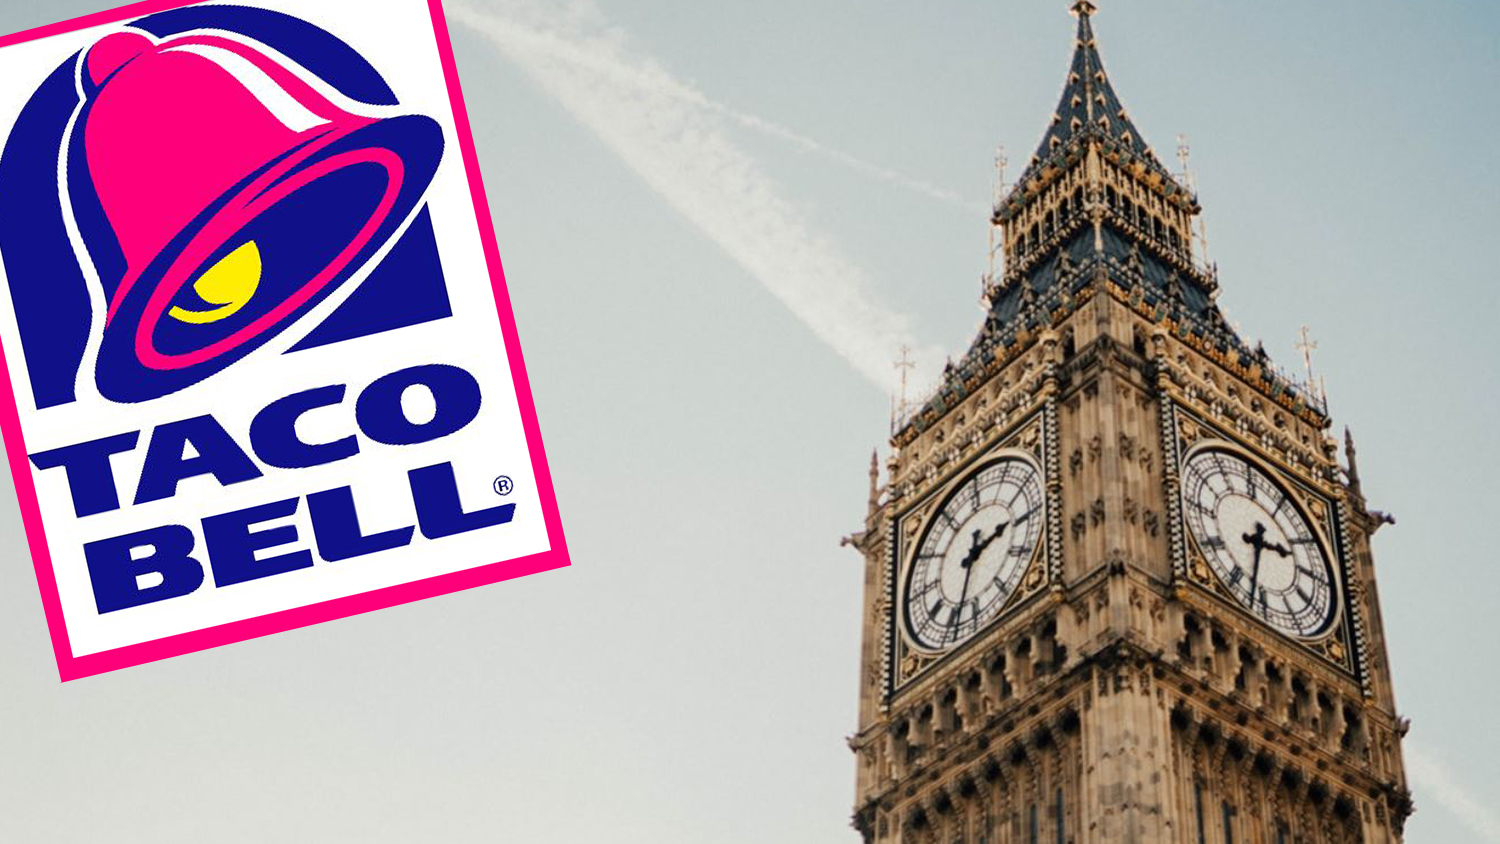 Big Ben Is Just As Excited About Vegan Taco Bell Burritos As We Are